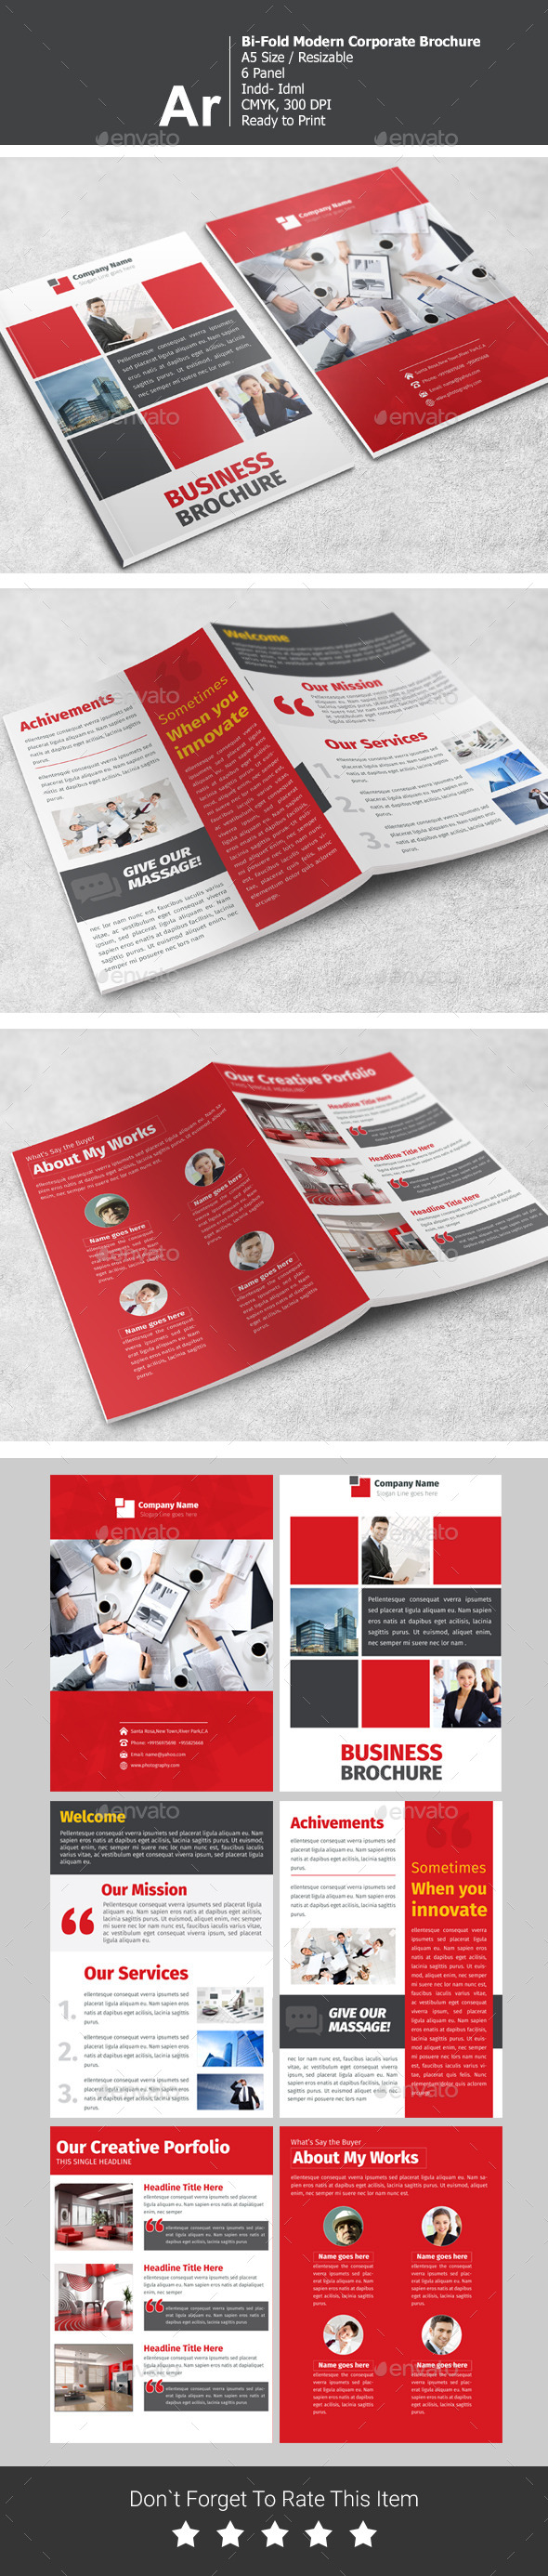 GraphicRiver Bi-Fold Corporate Brochure V2 11408286